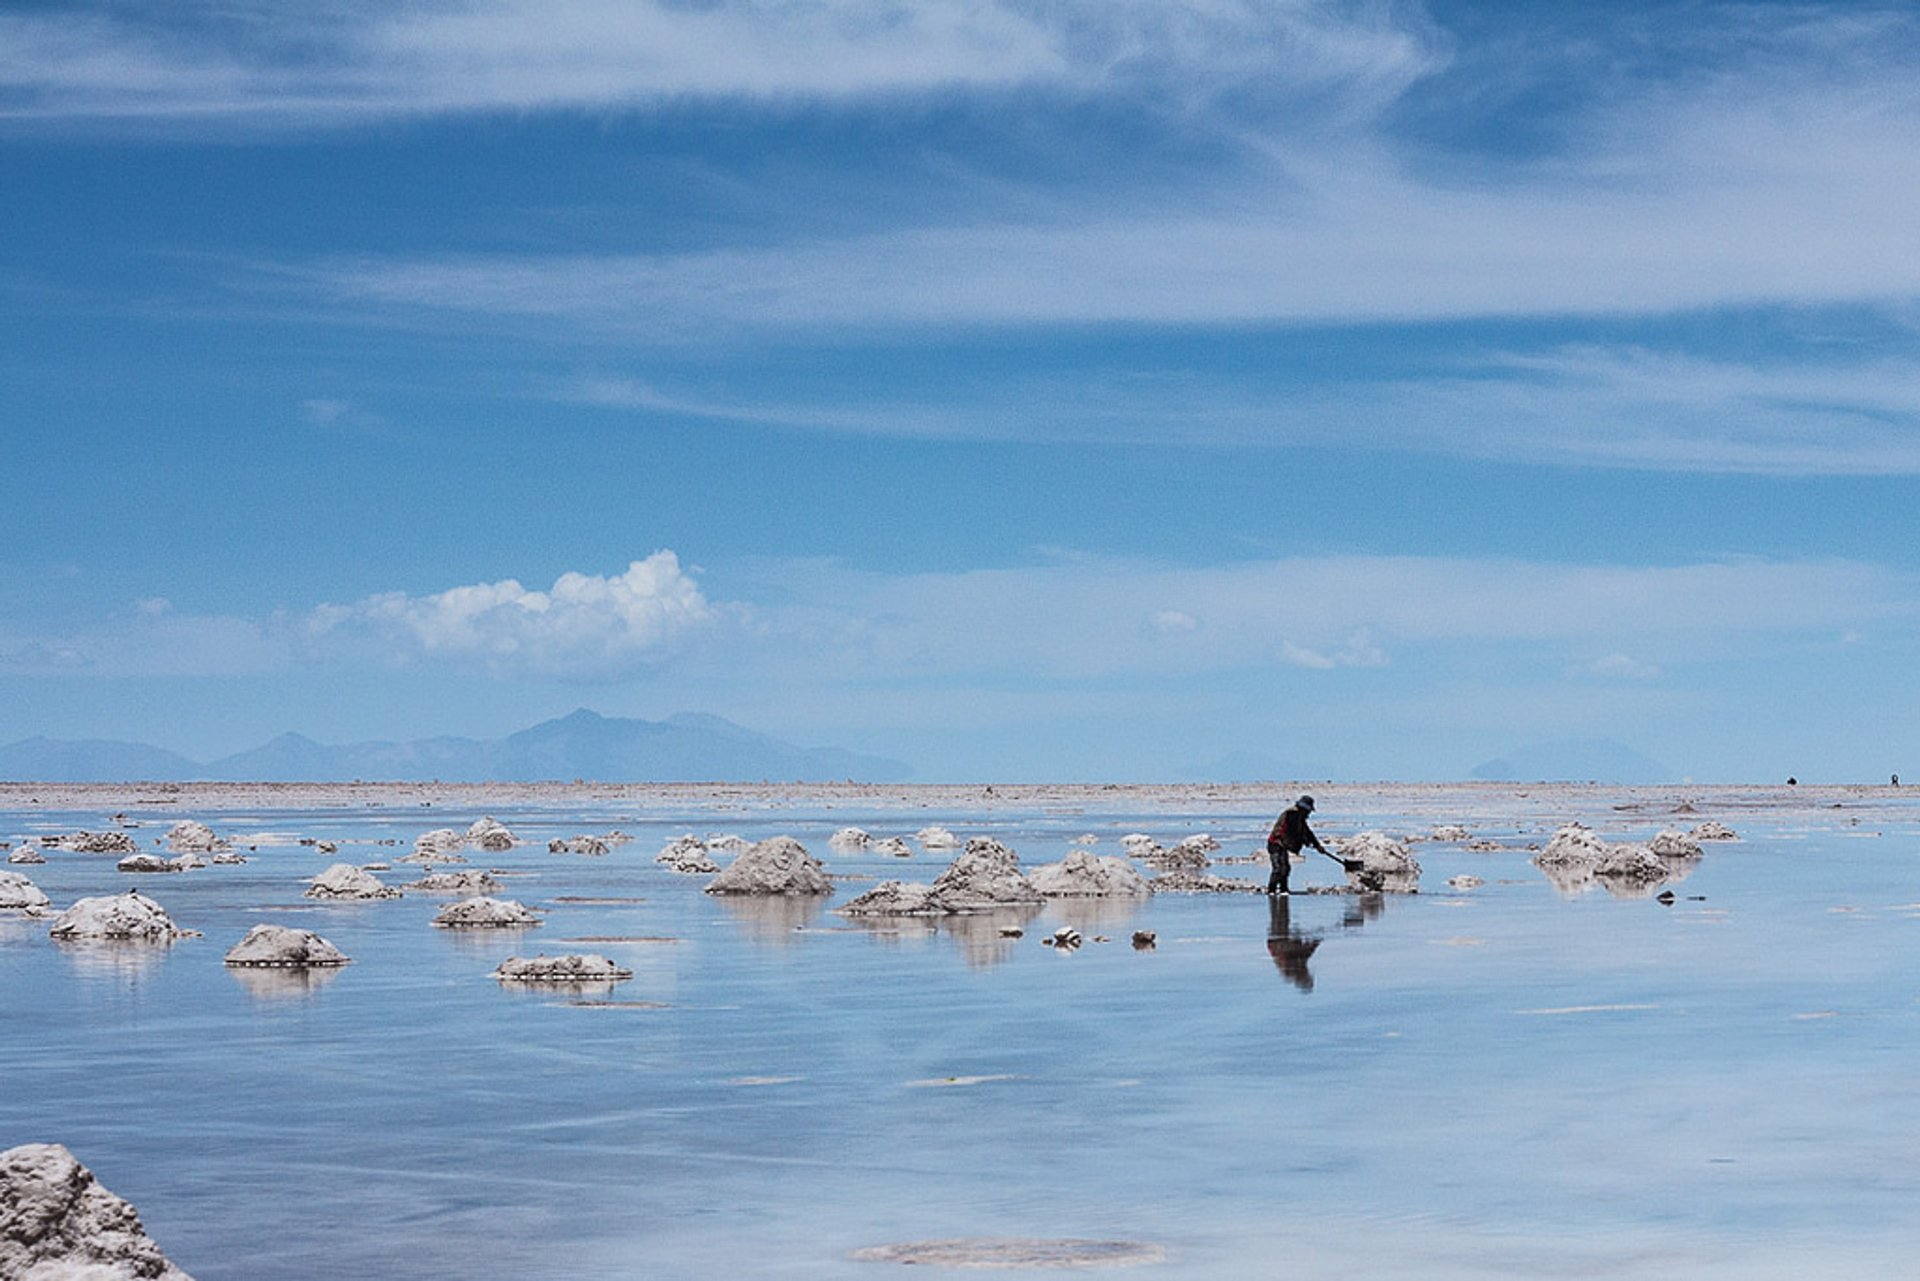 Best time for Lake at Salt Flats or Salar de Uyuni in Bolivia